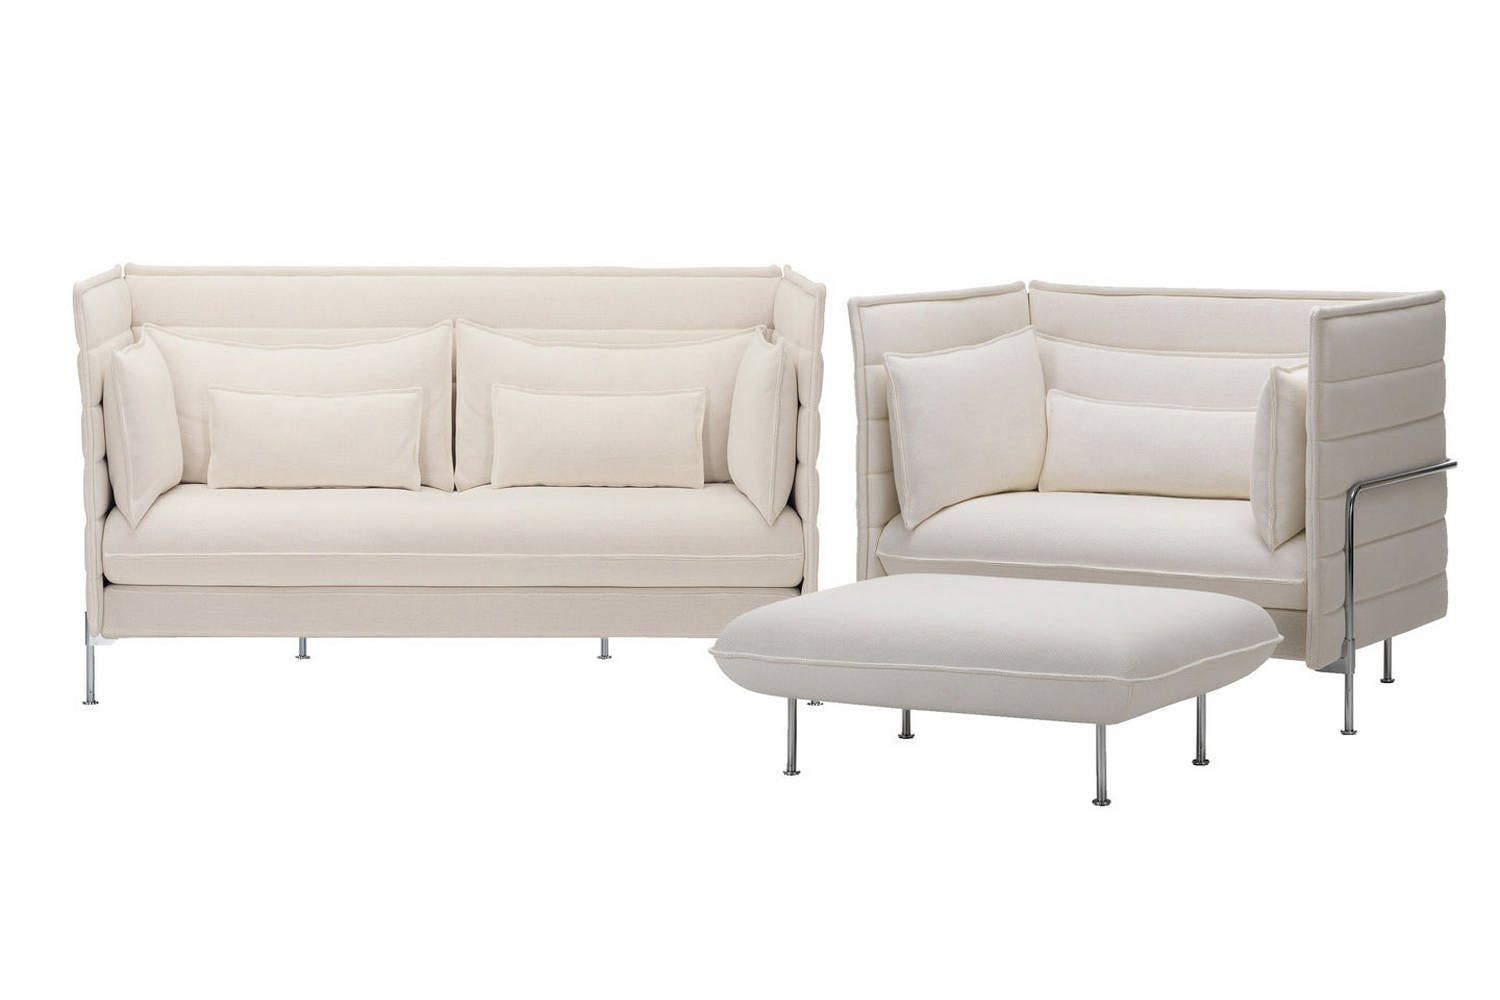 Alcove Sofa By Ronan & Erwan Bouroullec For Vitra